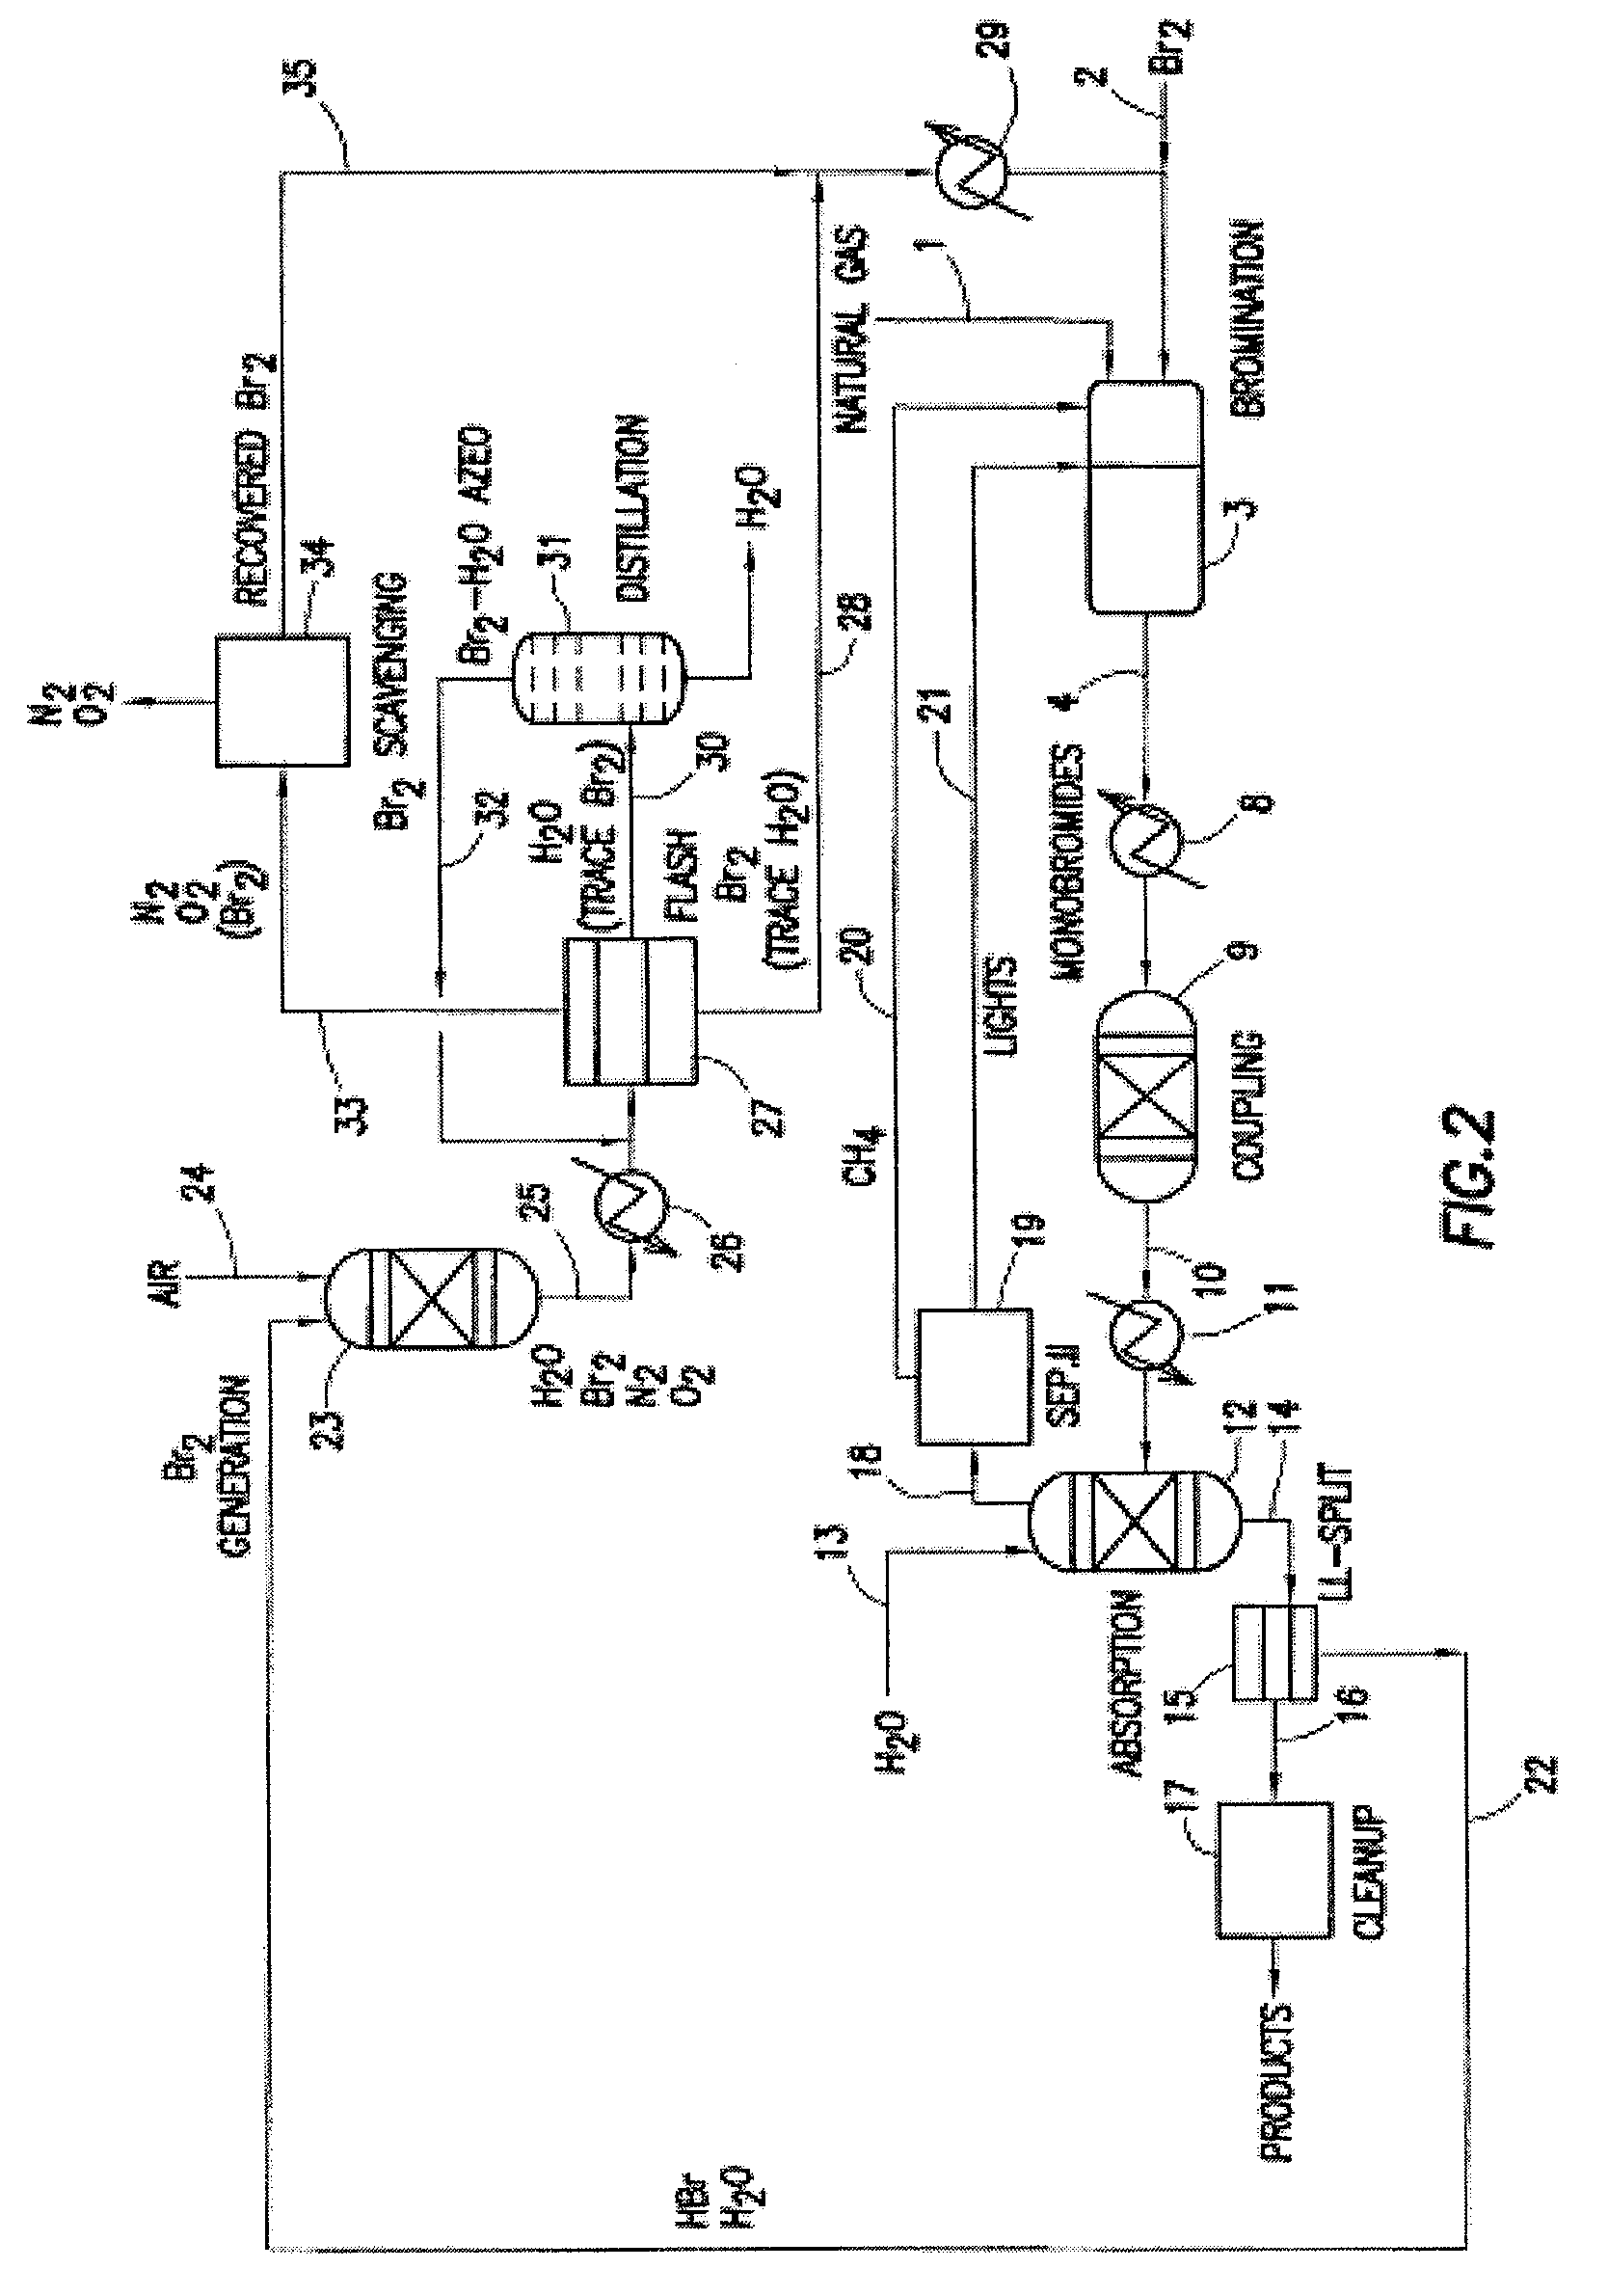 Patente Us8273929 Continuous Process For Converting Natural Gas To Taylor Dunn B2 48 Wiring Diagram Patent Drawing